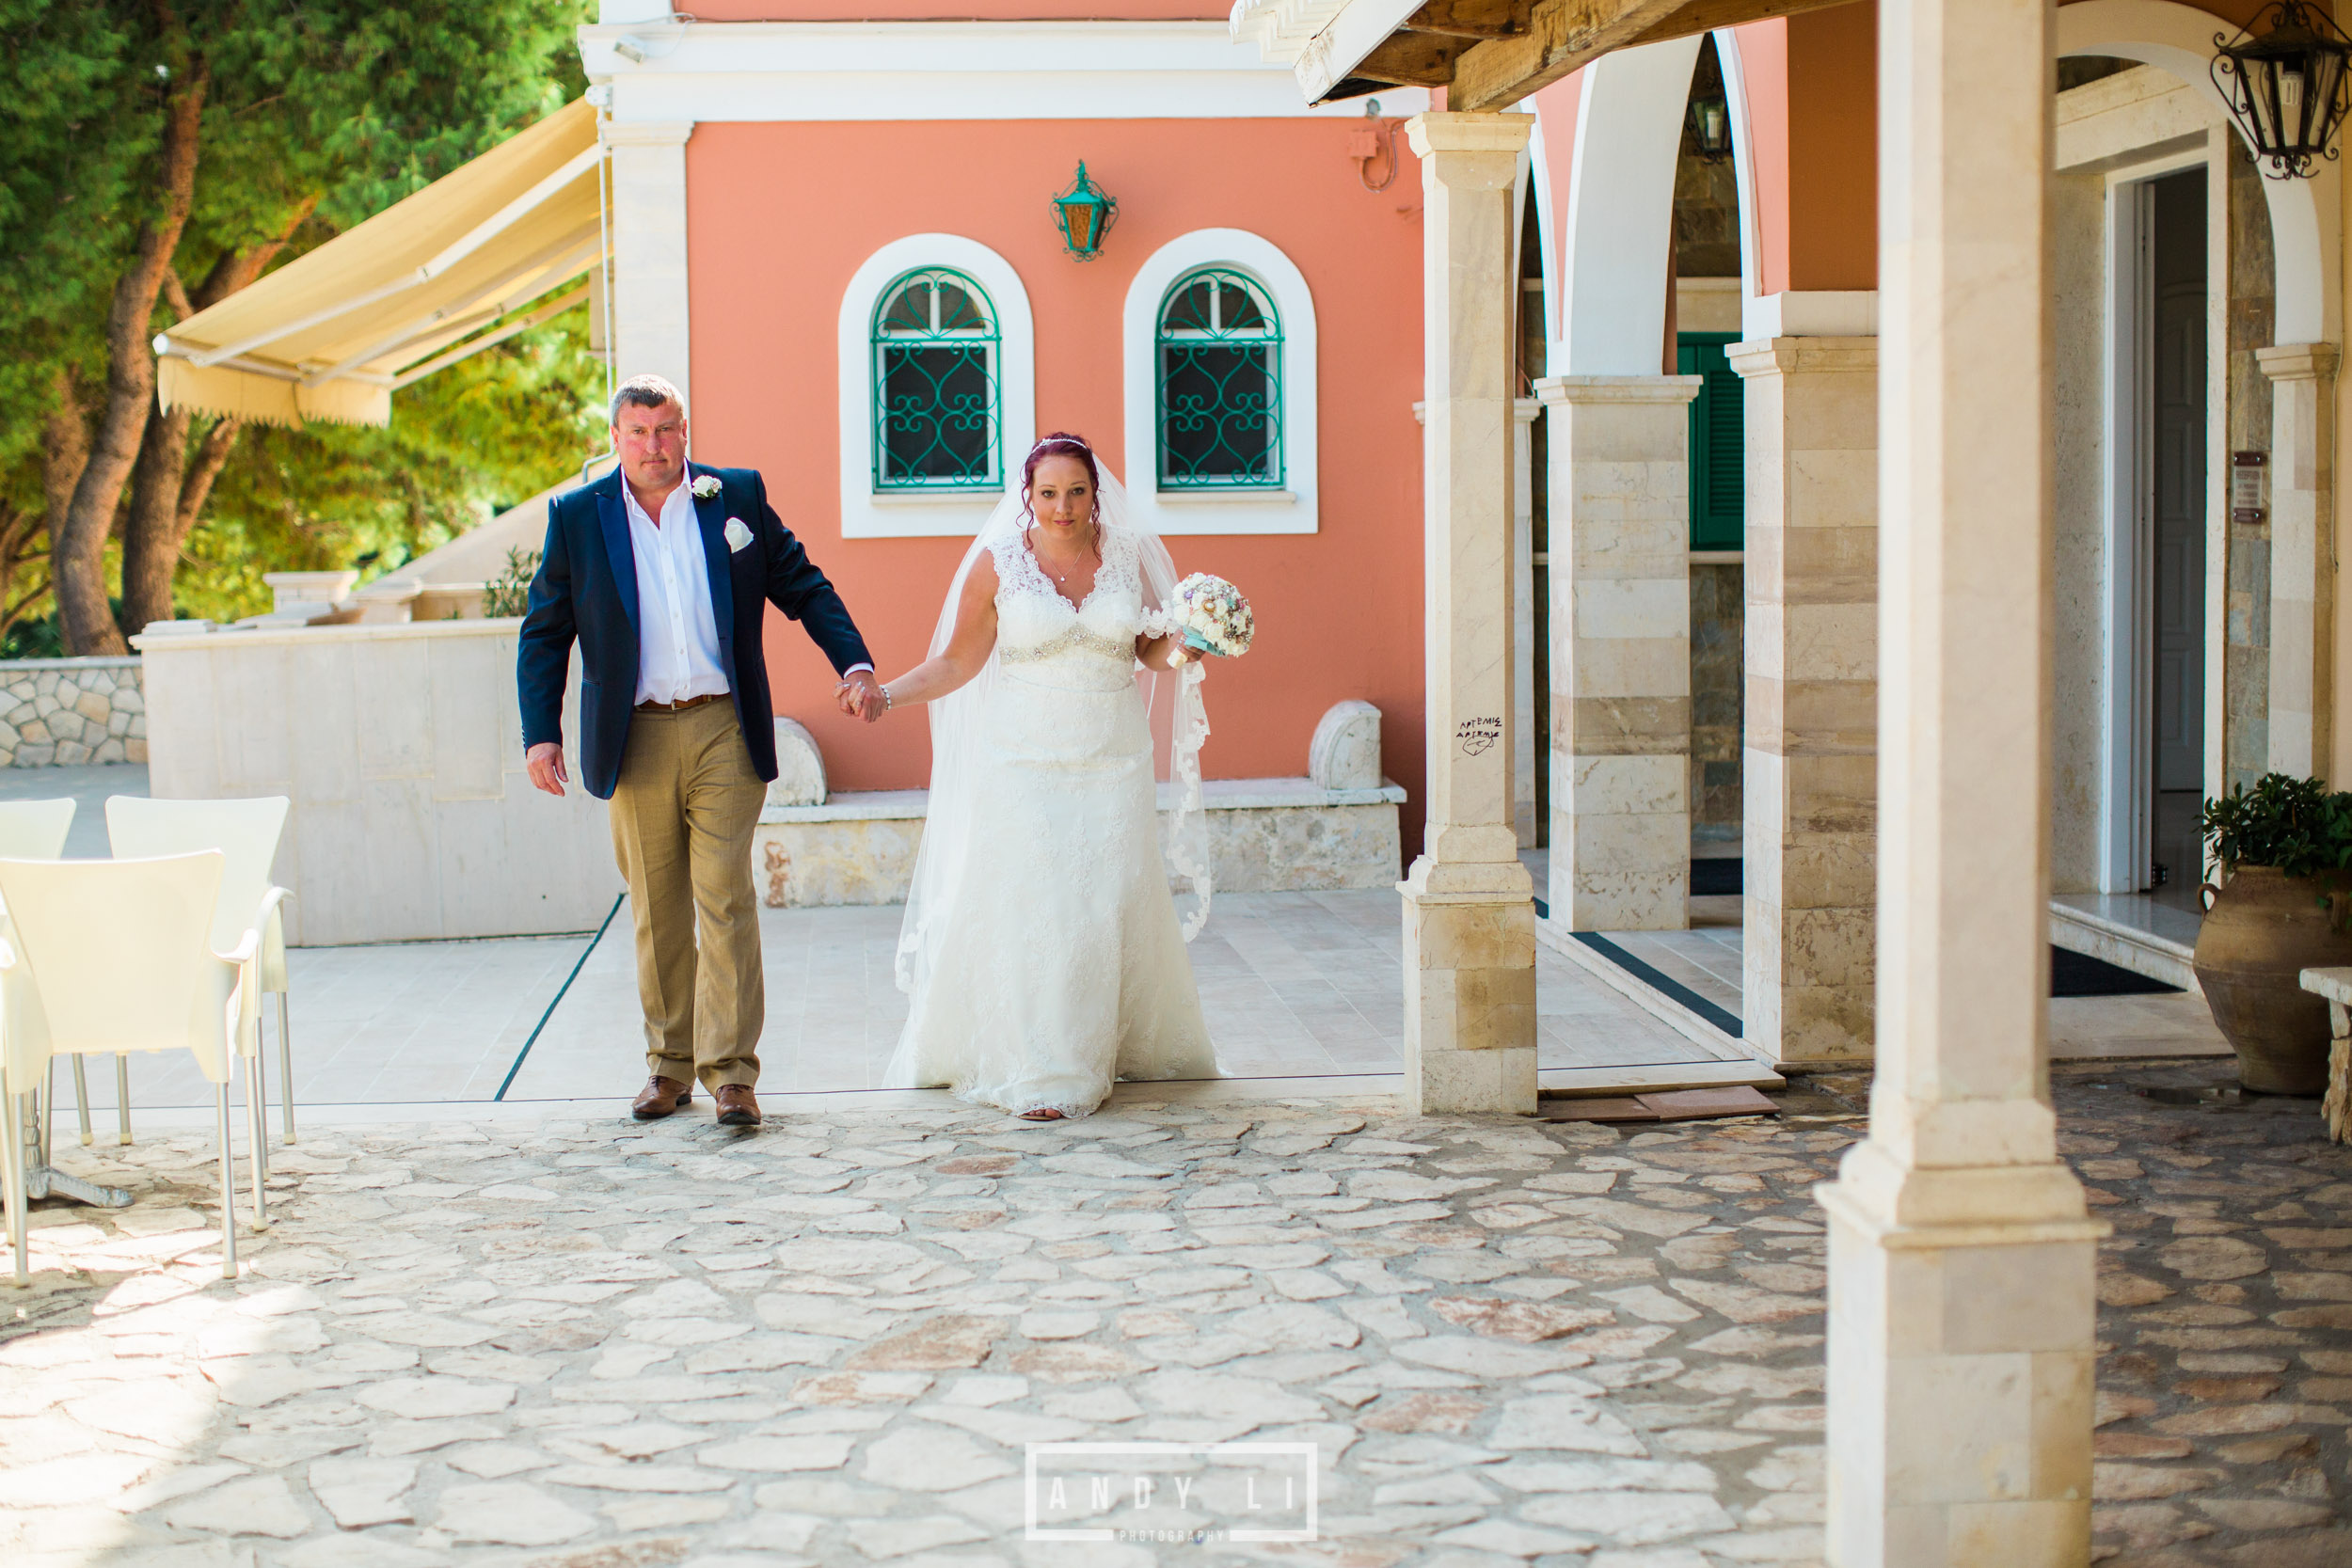 Destination Wedding Photographer - Zante-023.jpg